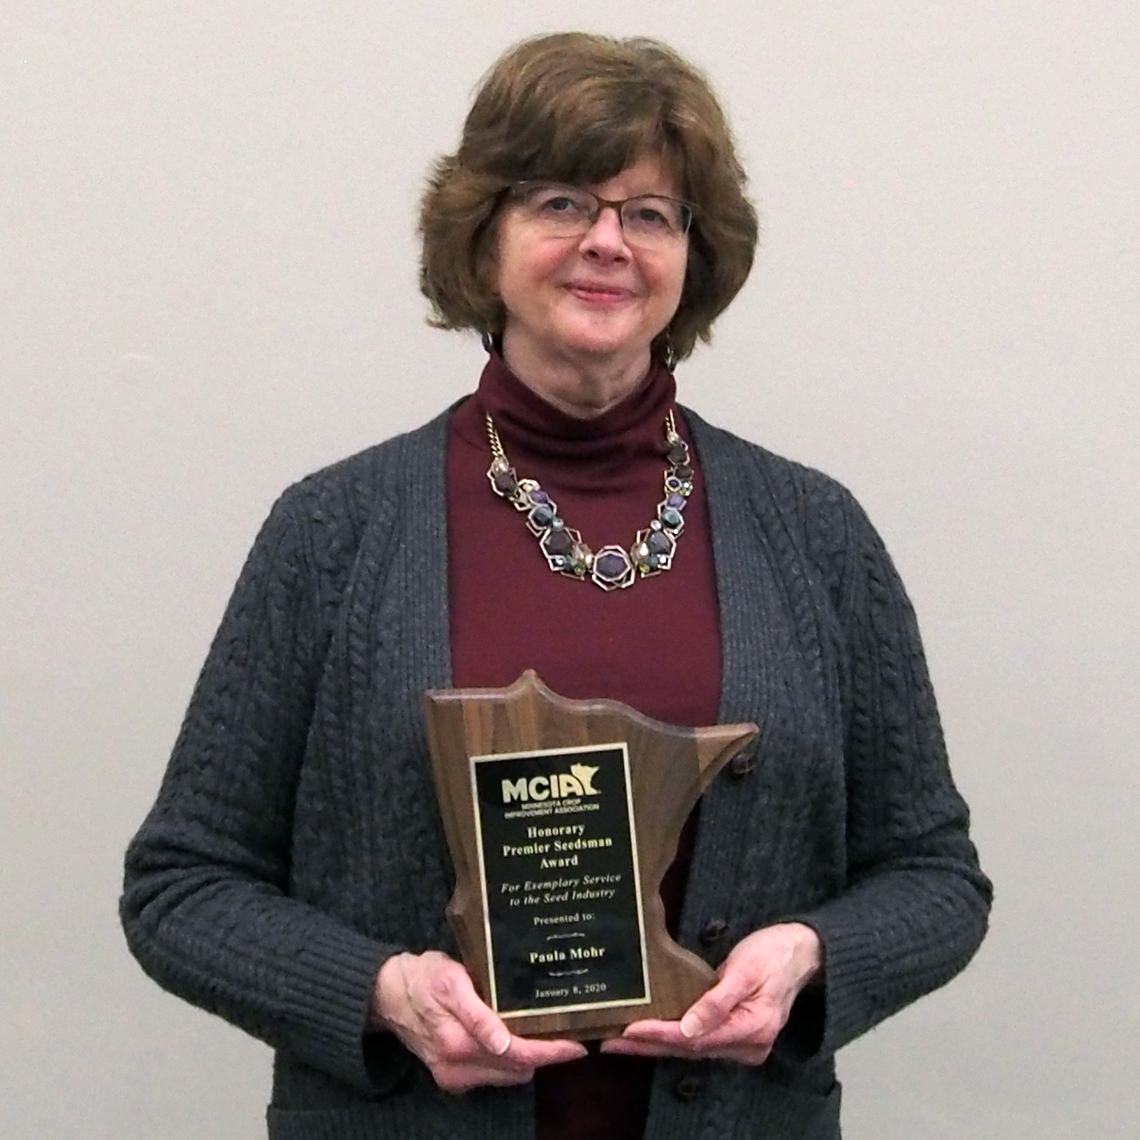 Paula Mohr, editor of The Farmer, received award from MCIA